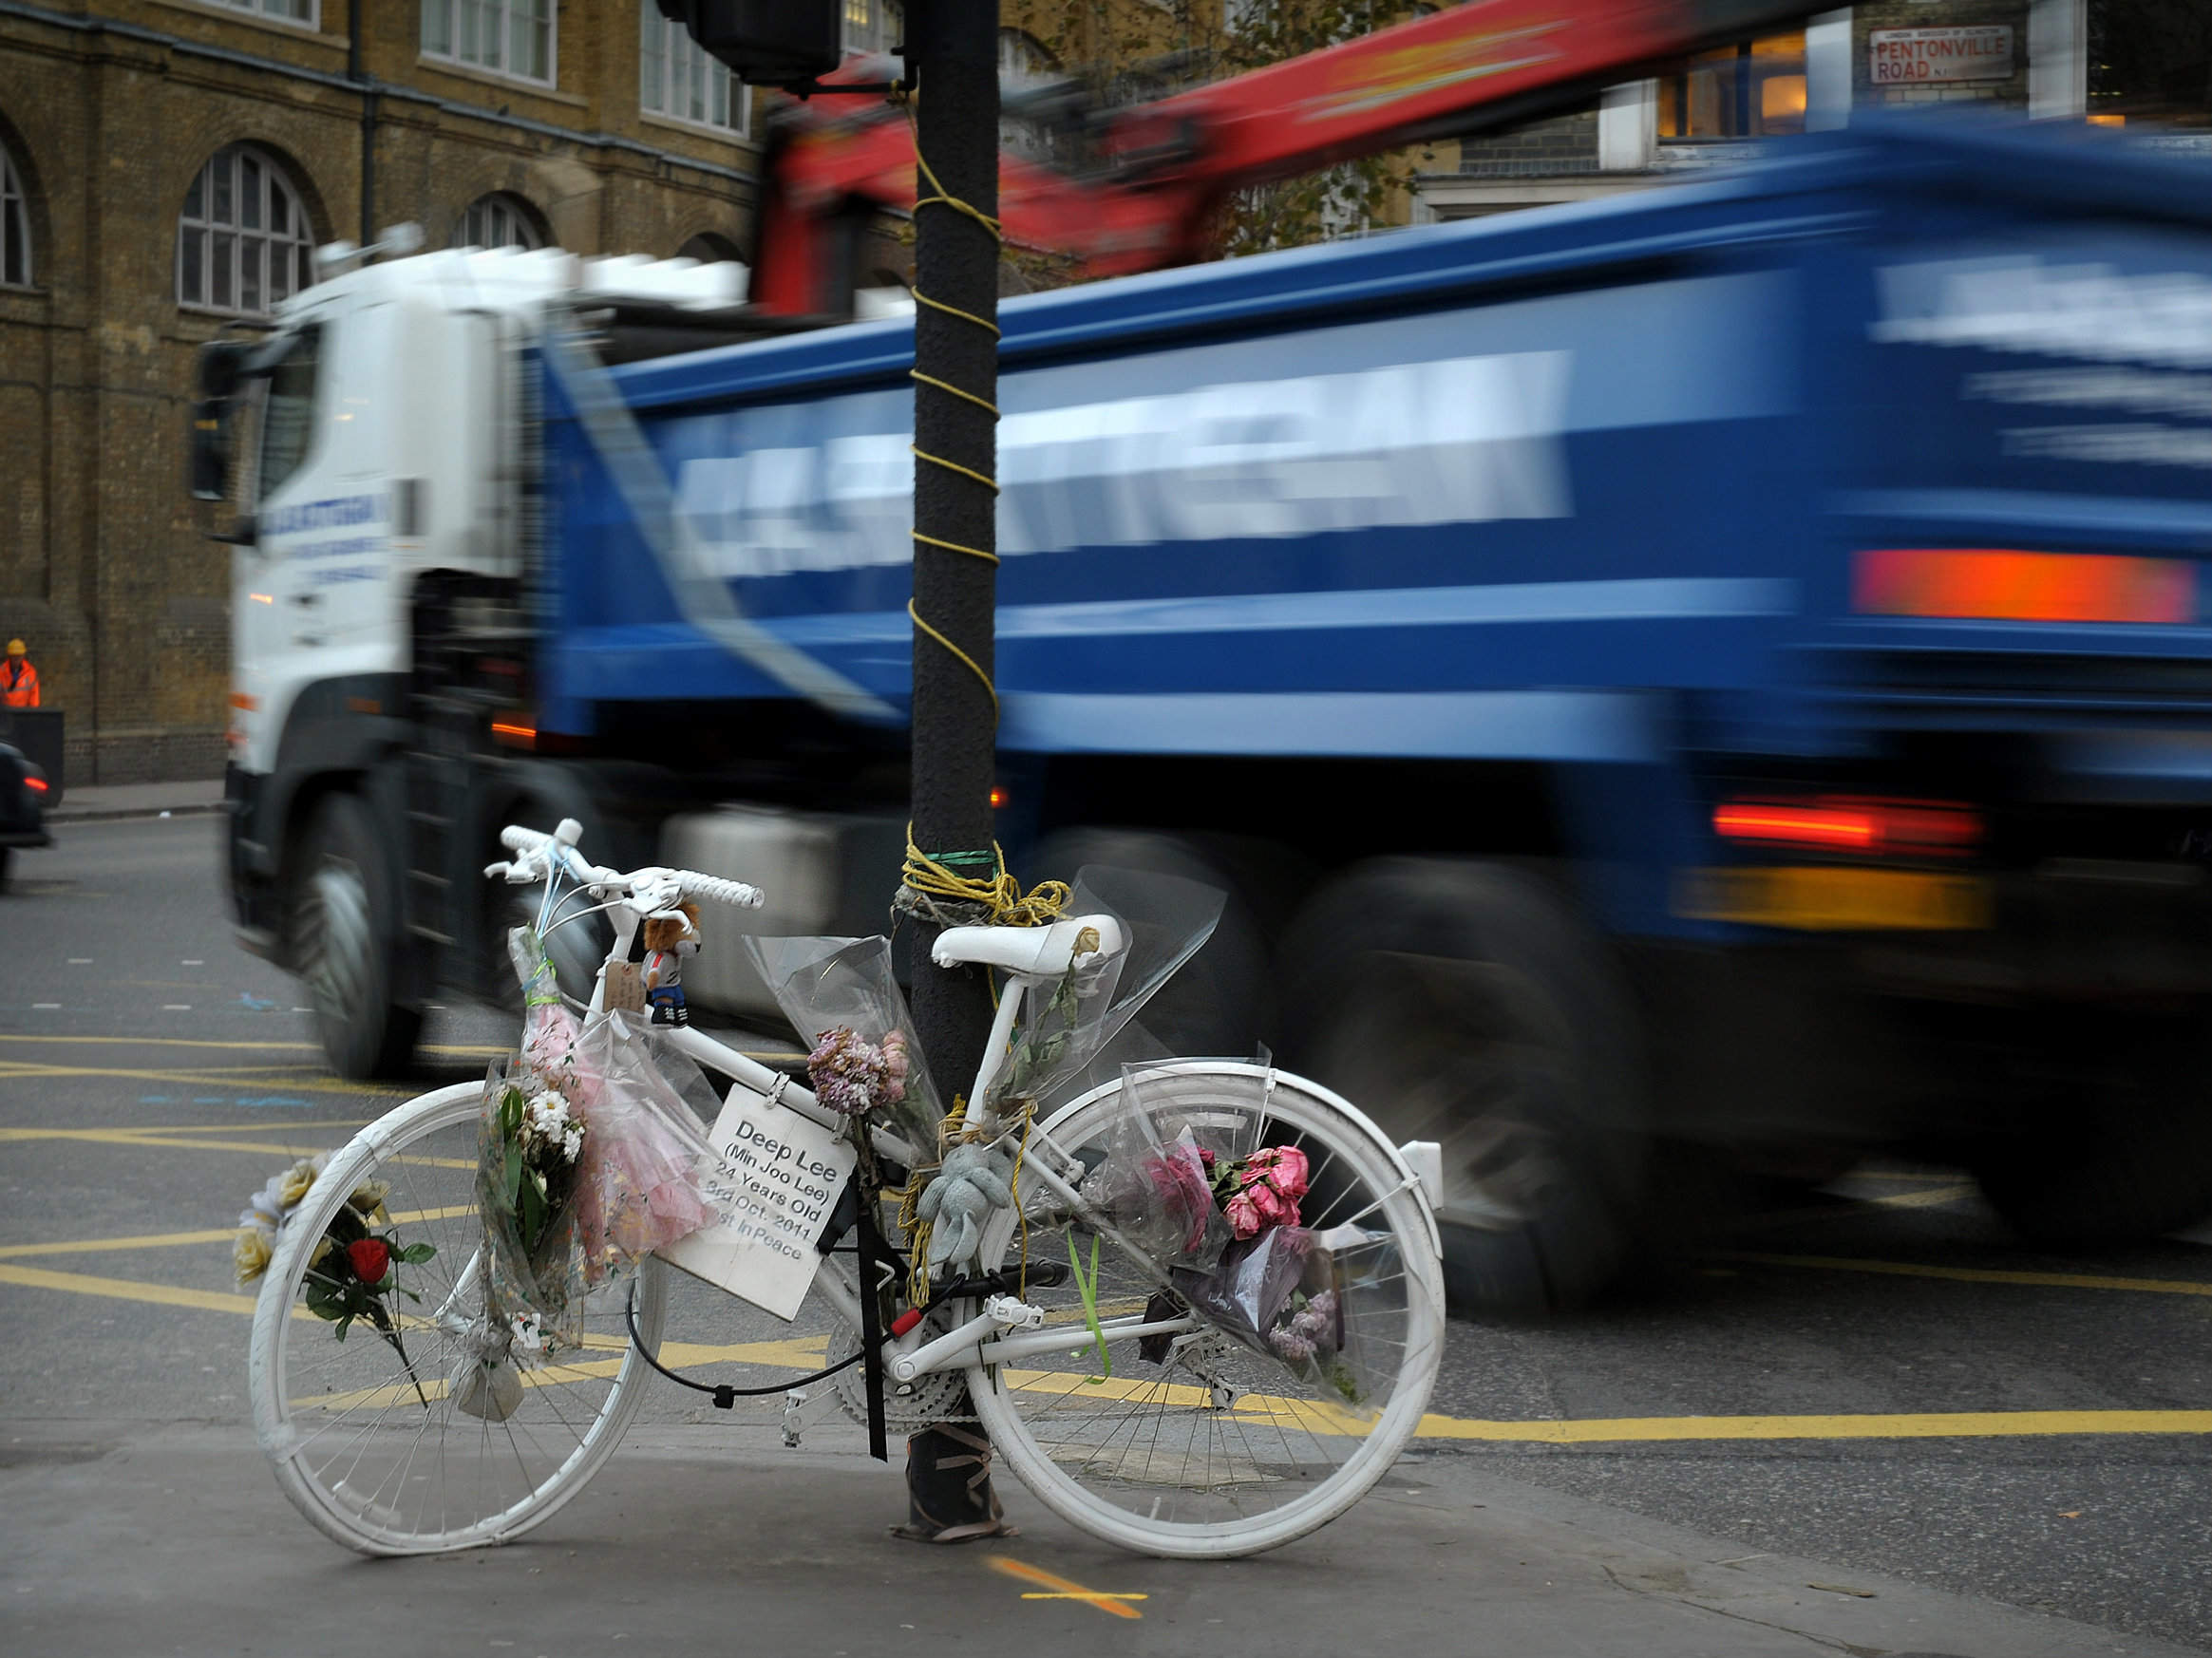 Death rides a bicycle: Why is riding a bike so often lethal?